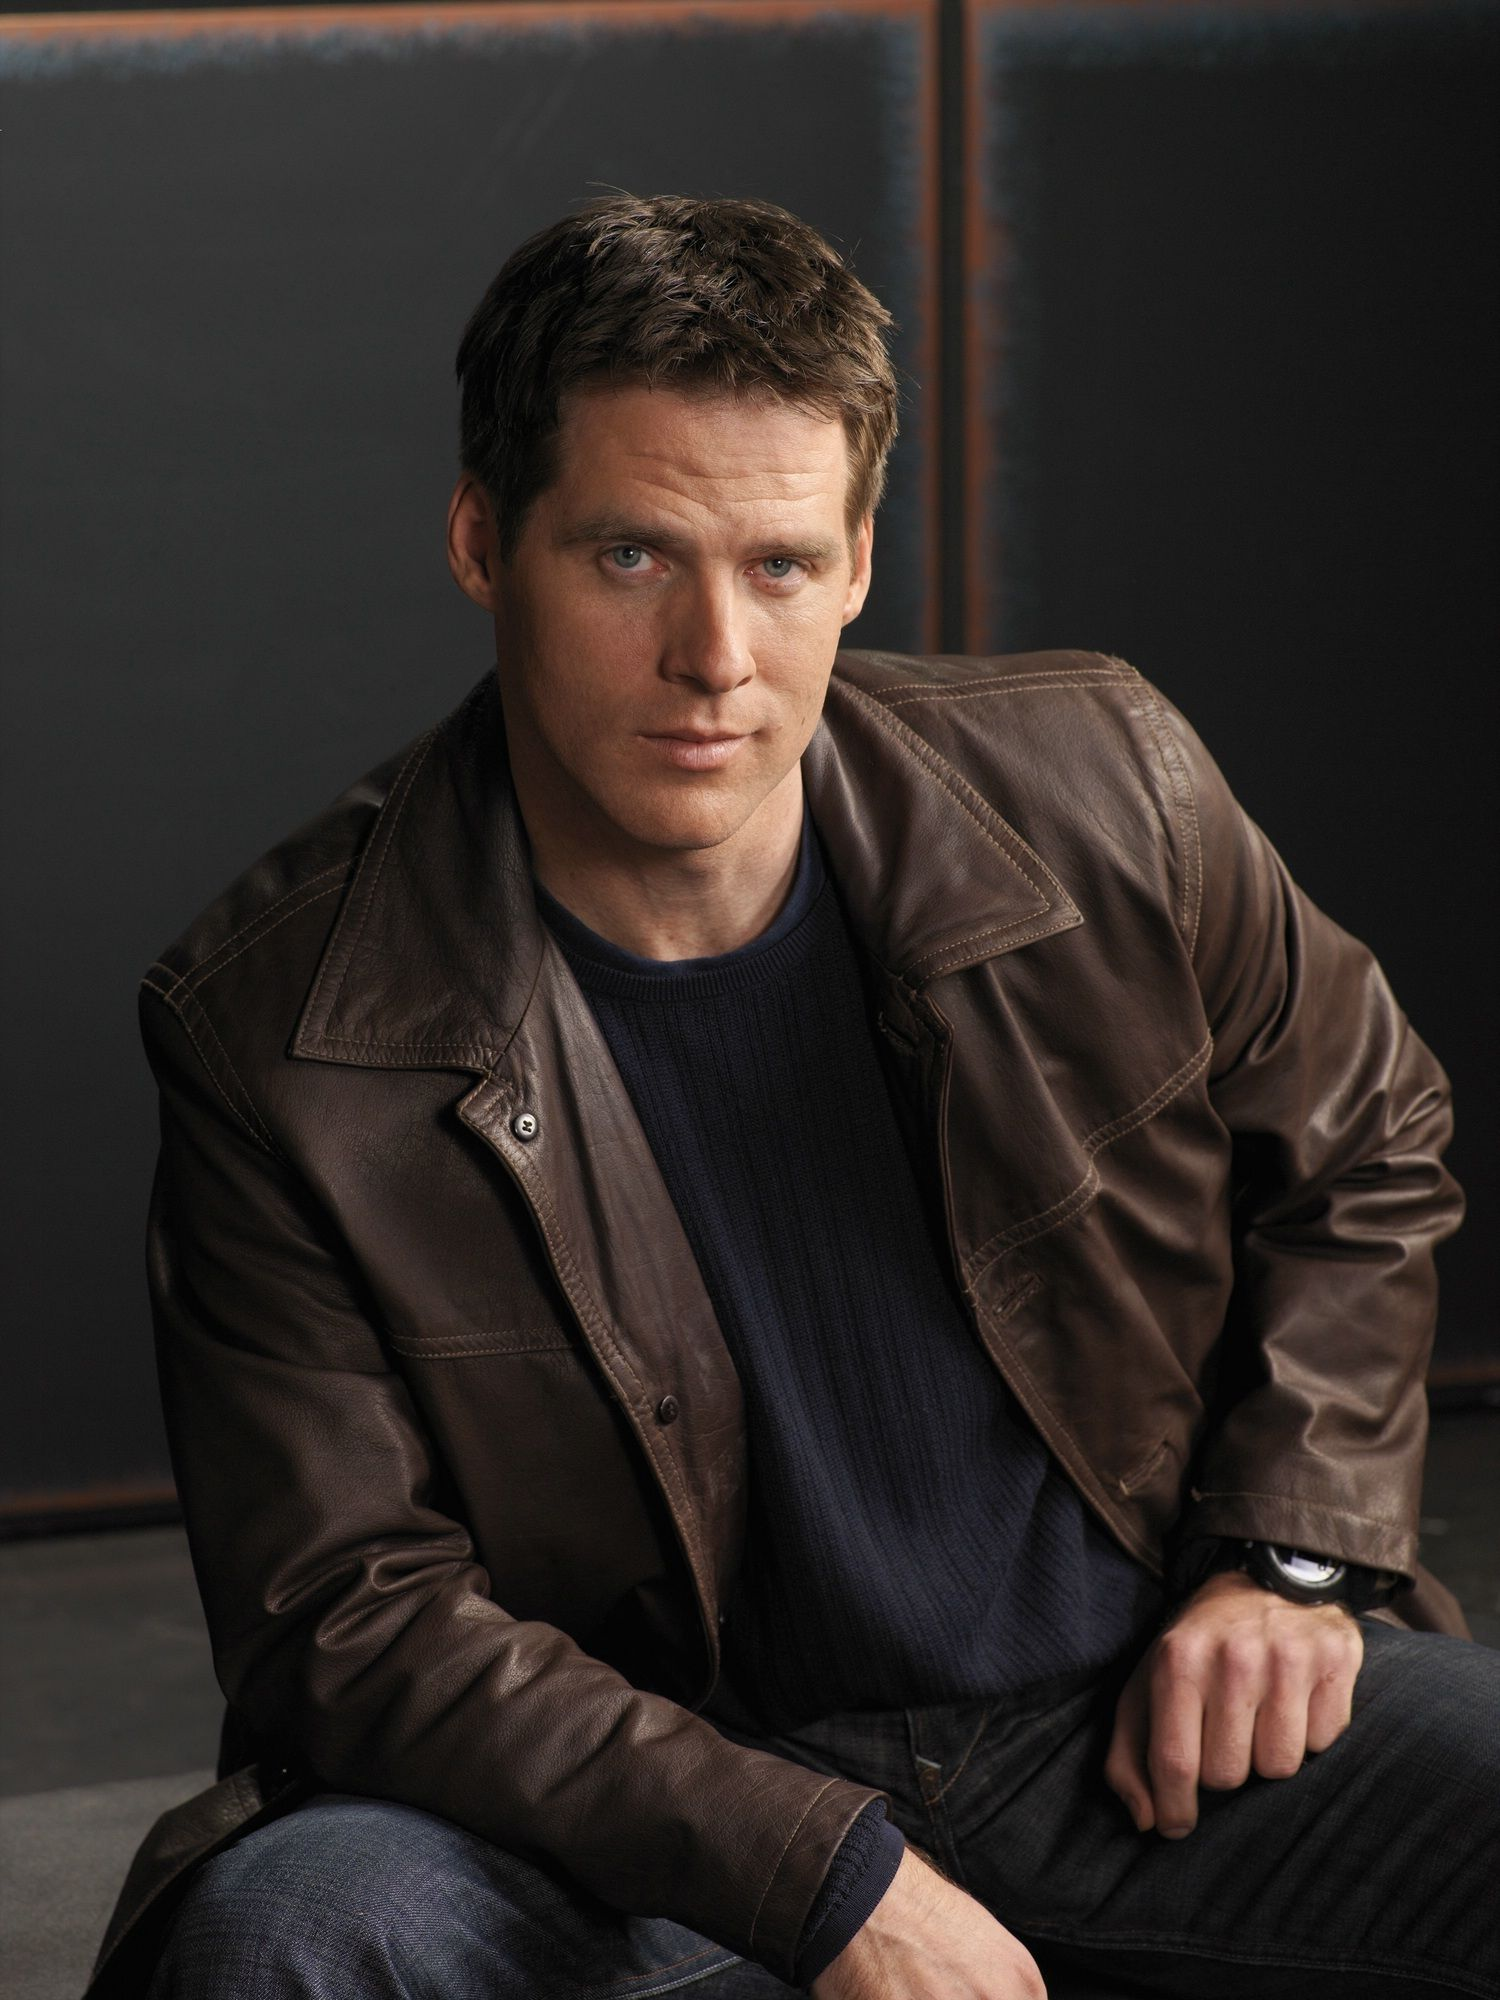 Ben Browder Intensely Brilliant In Any Role He Takes On